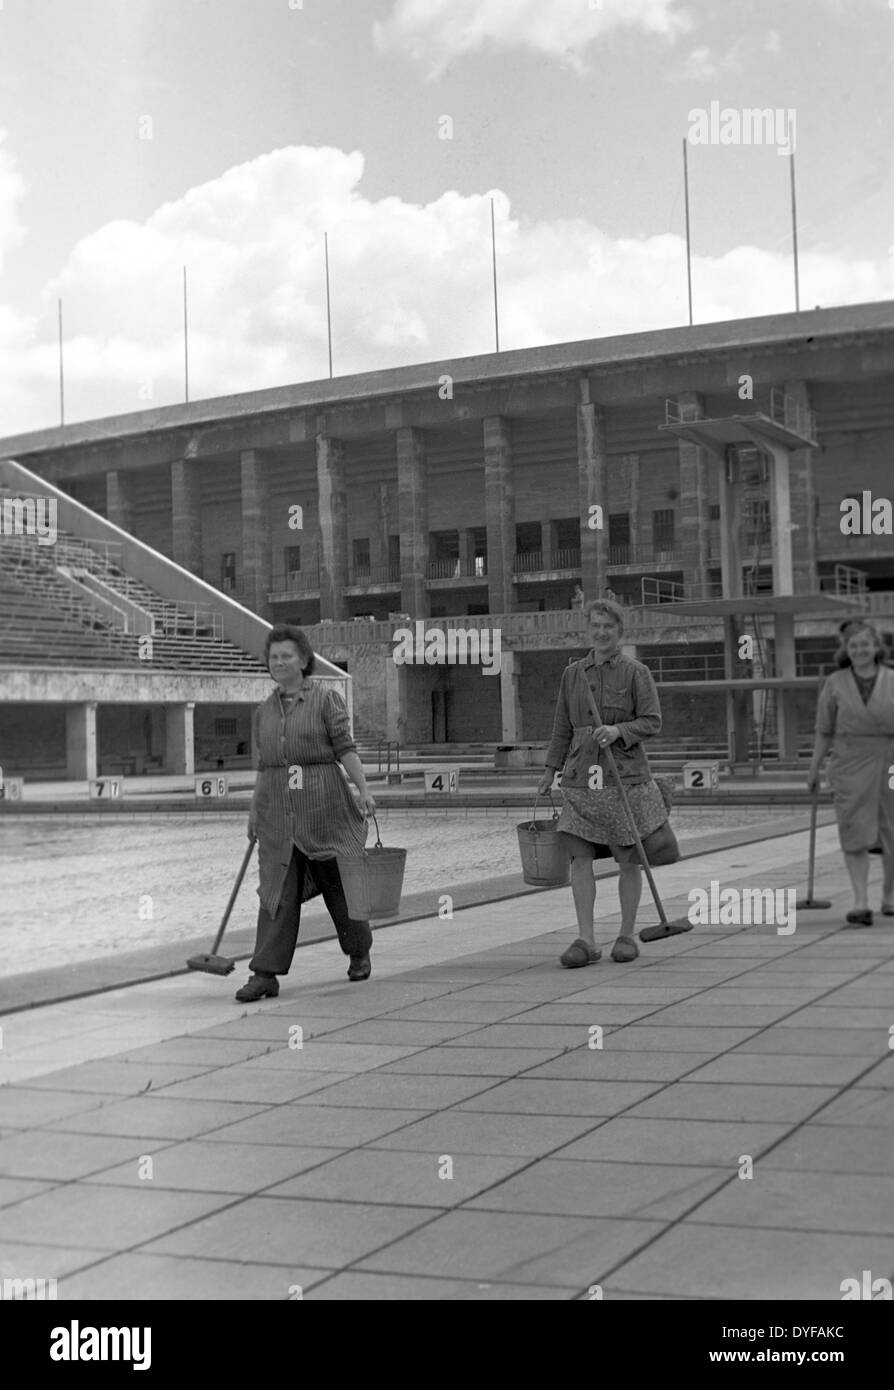 The Olympic Stadium is cleaned by a troop of cleaners in Berlin, Germany, 1949. Photo: zbarchiv - NO WIRE SERVICE - Stock Image